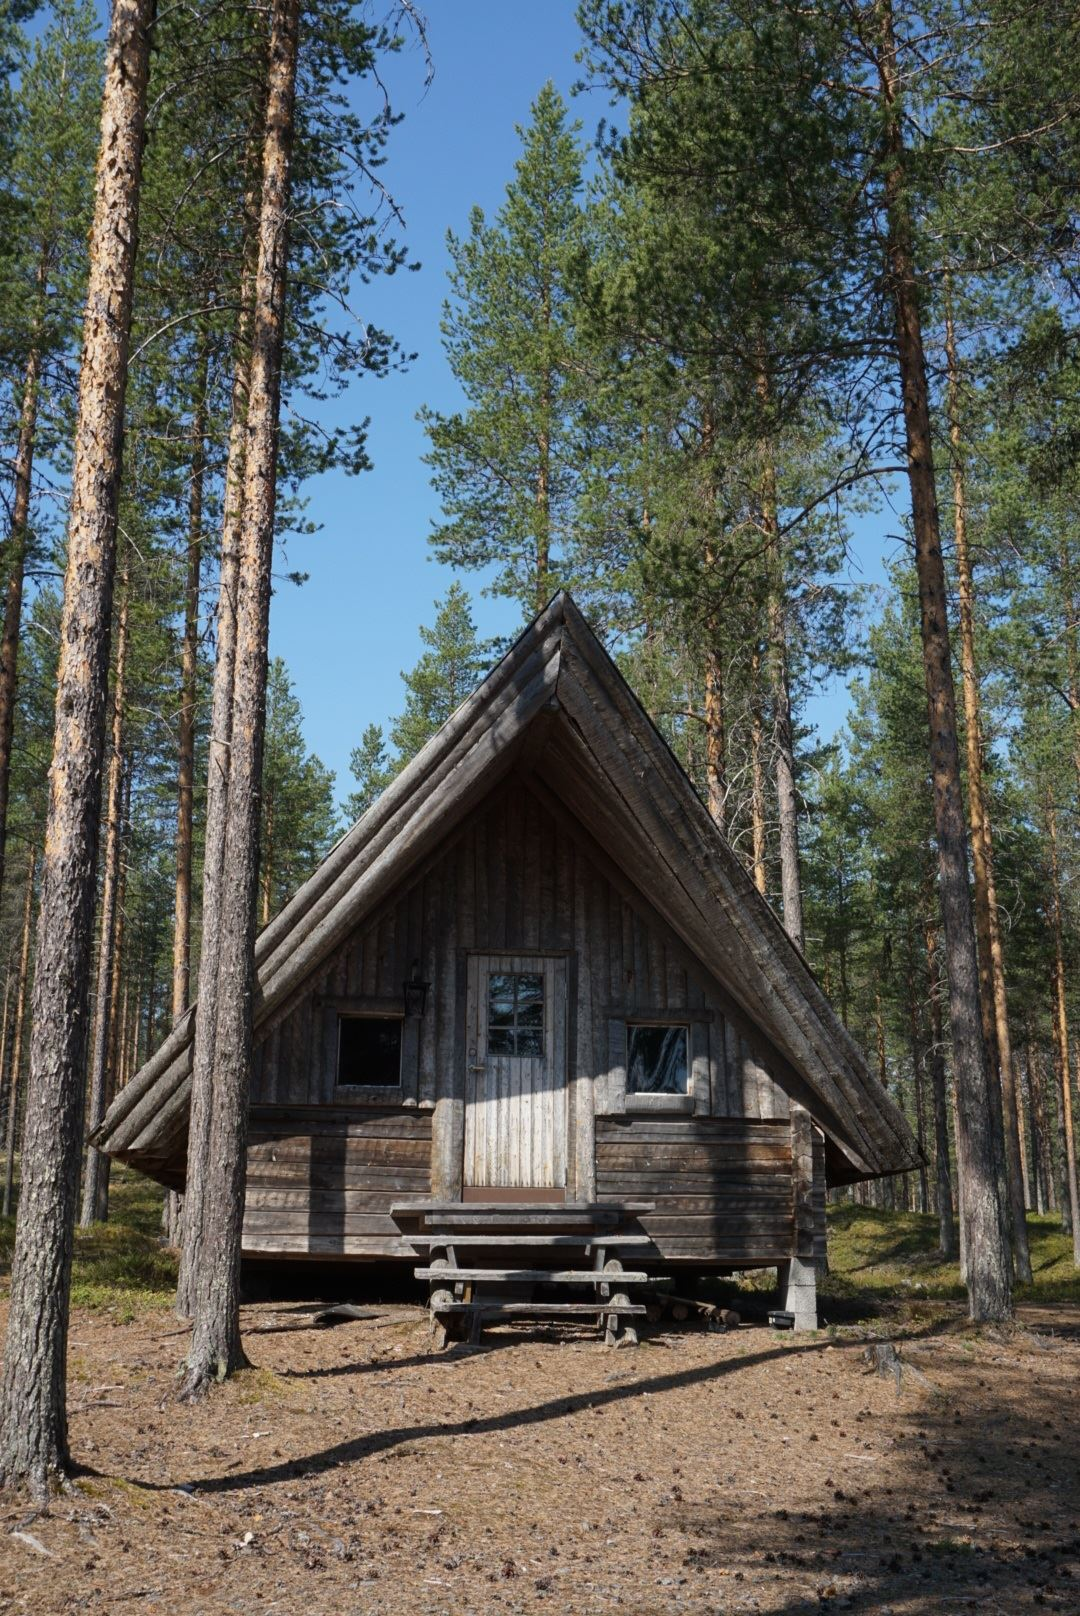 Forest cottages at Wilderness camp Vikheden